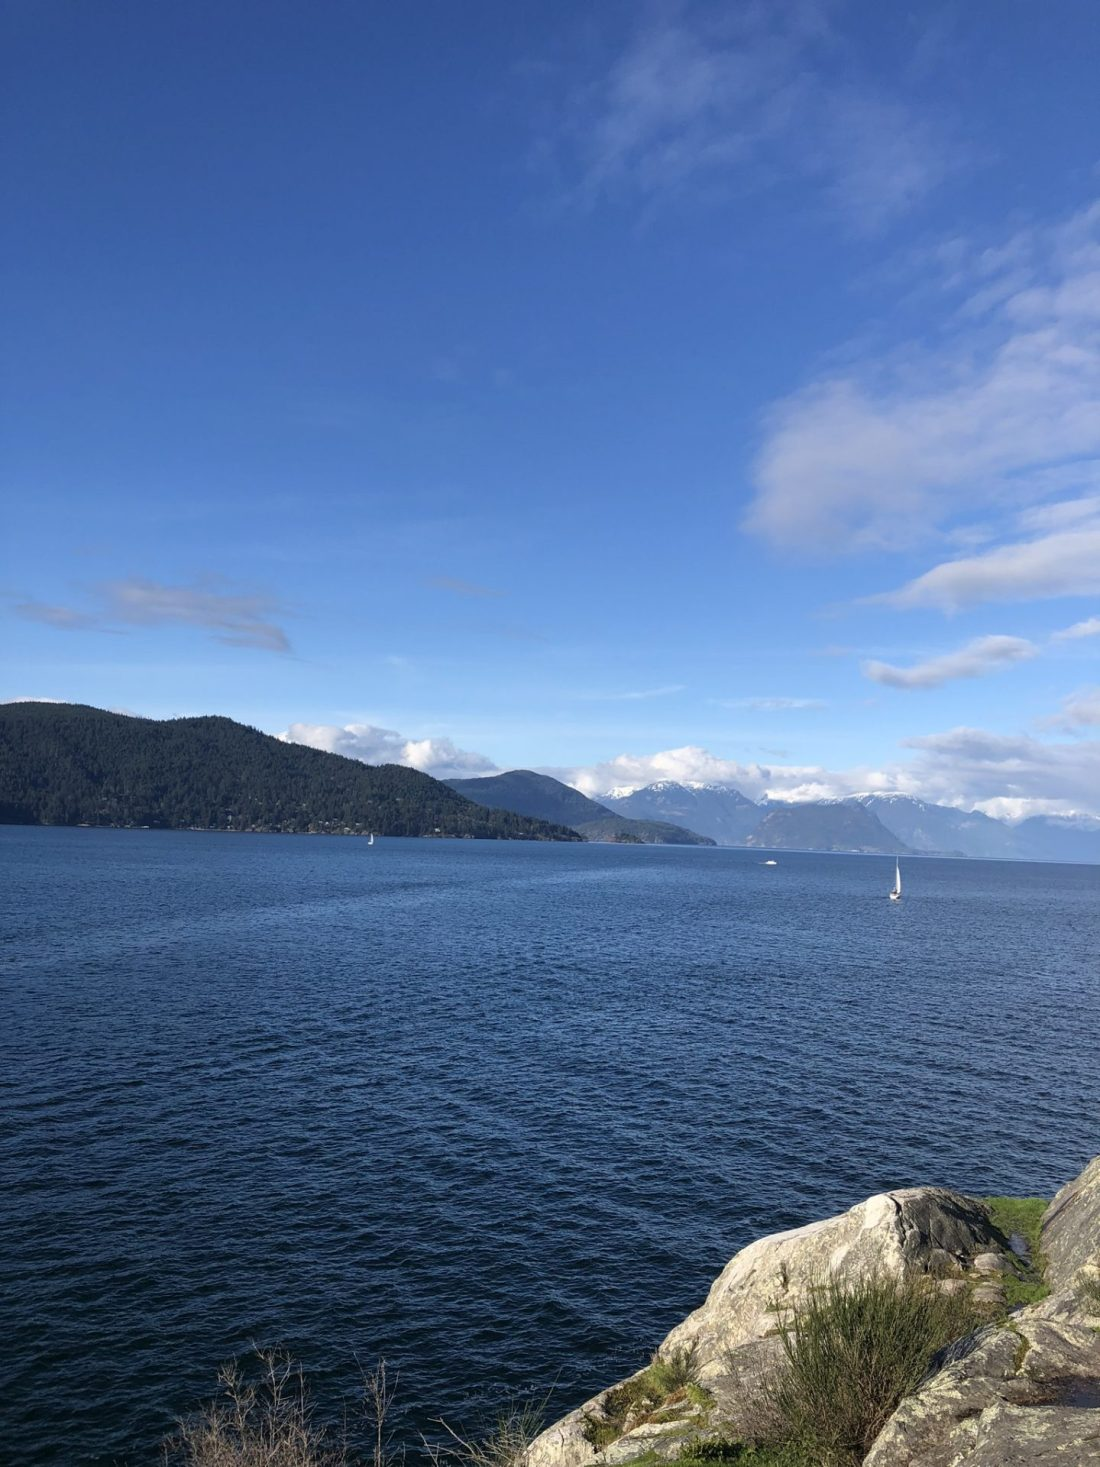 Views from Whytecliff Park